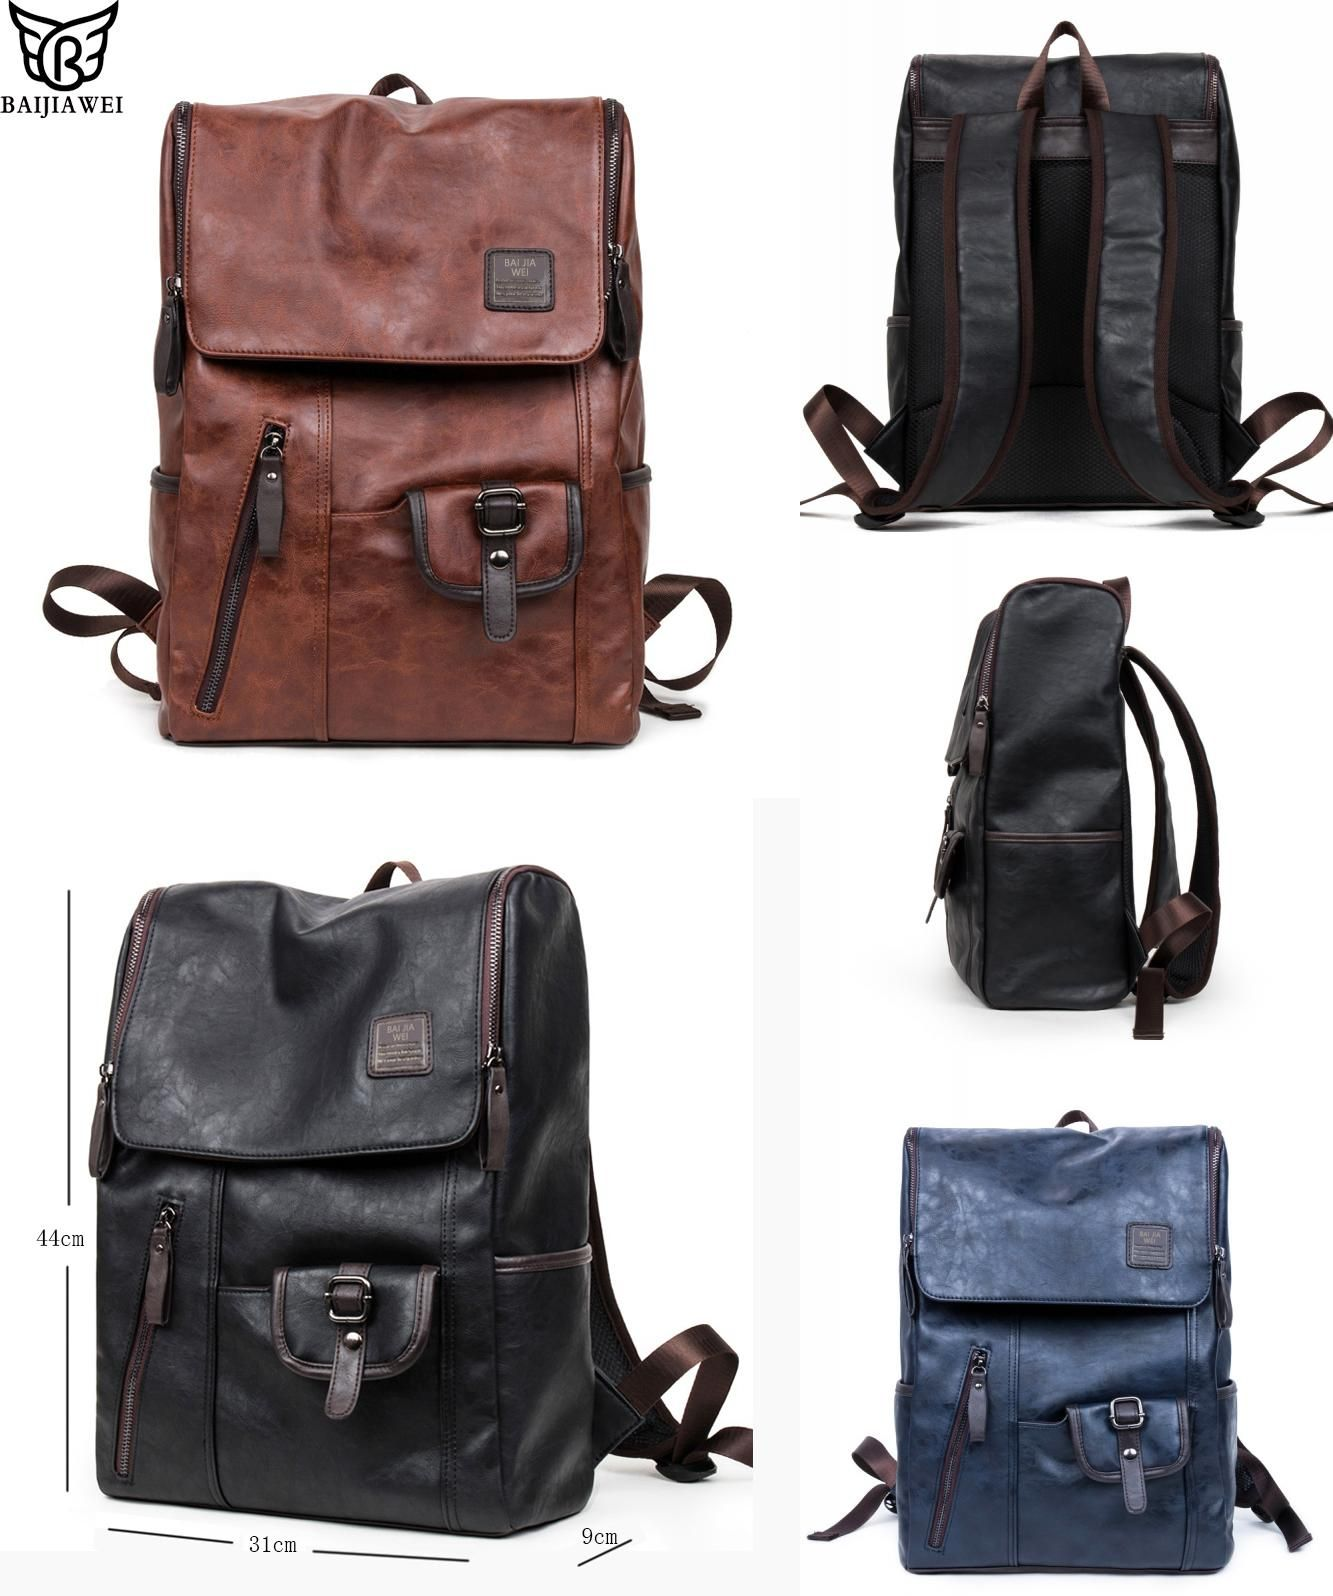 d0c6d596929 Western Style Leather Backpacks- Fenix Toulouse Handball